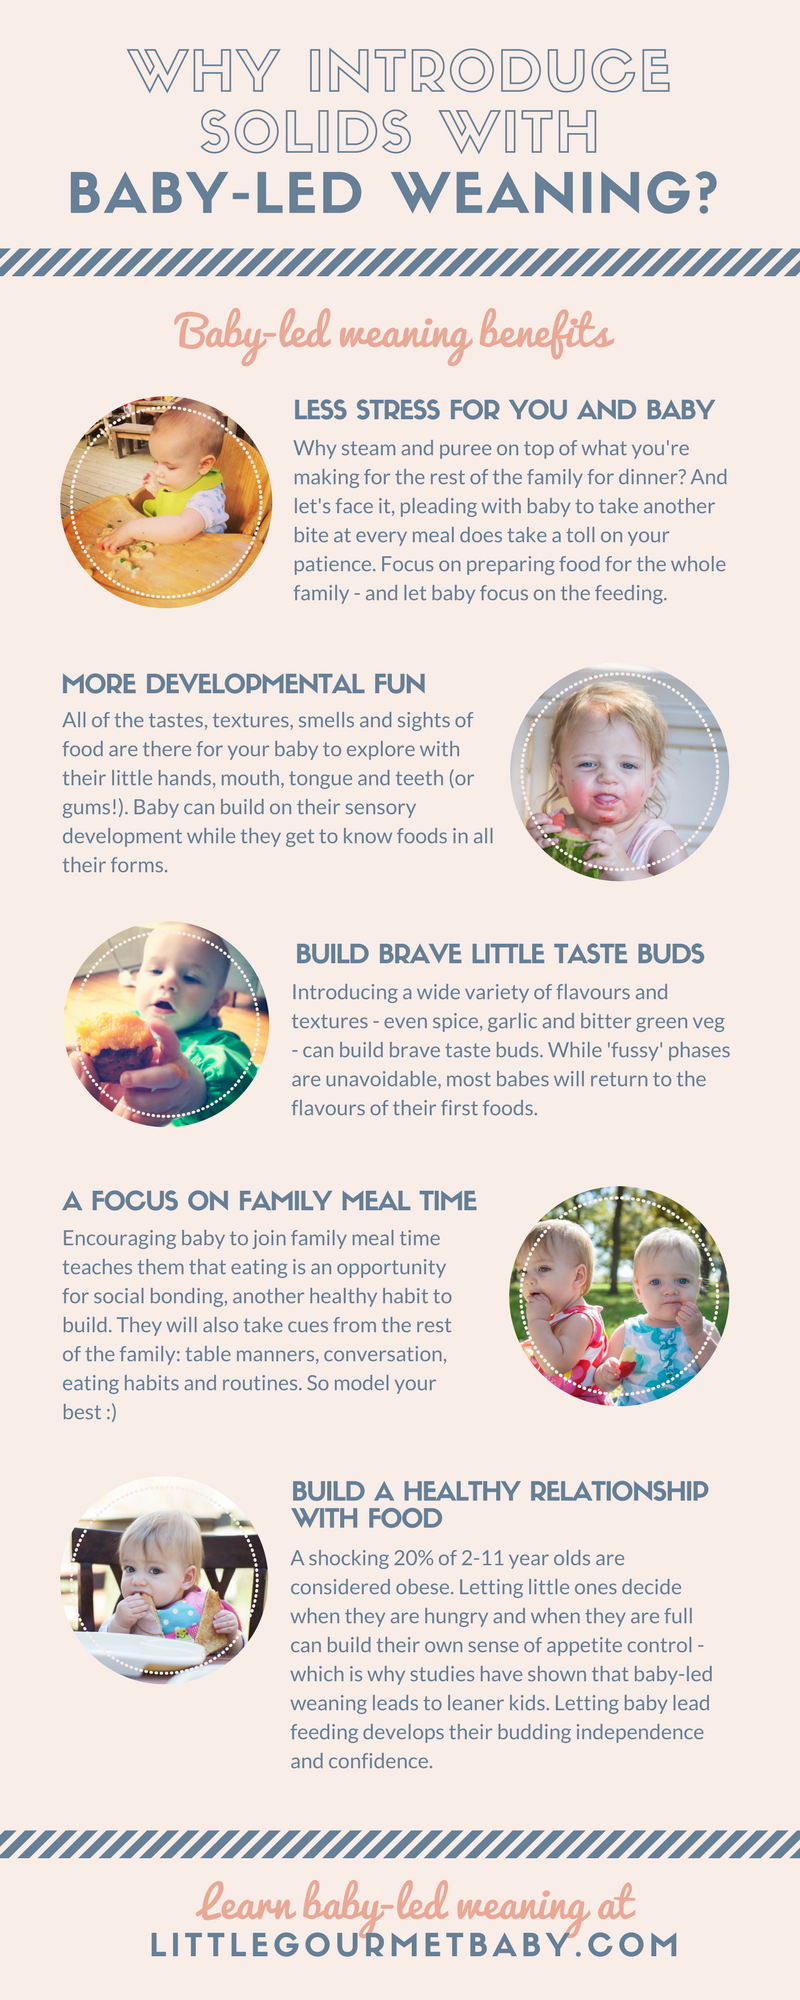 Why introduce solids with baby-led weaning? Baby-Led Weaning Benefits [INFOGRAPHIC] - Click for full-size!